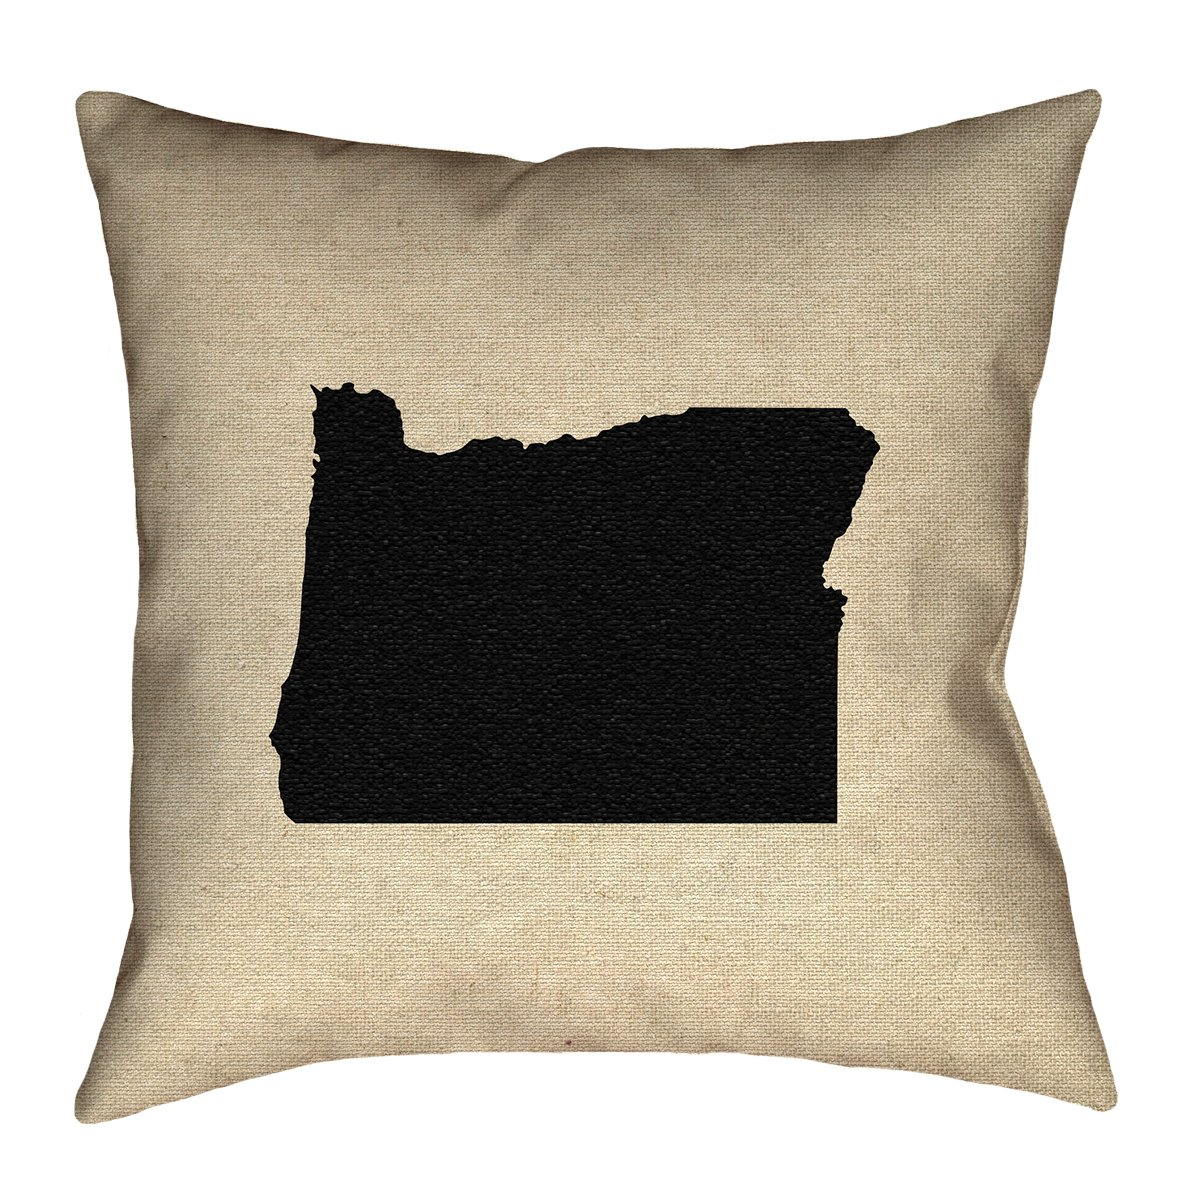 ArtVerse Katelyn Smith 20 x 20 Cotton Twill Double Sided Print with Concealed Zipper /& Insert Oregon Pillow